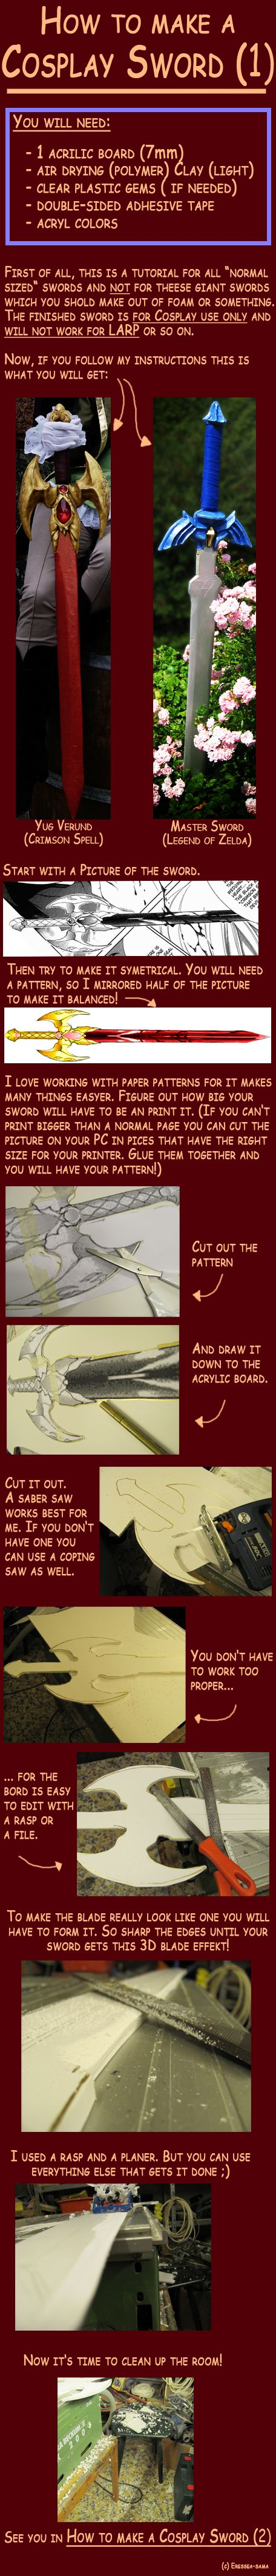 How to make a Cosplay Sword 1 by ~Eressea-sama on deviantART